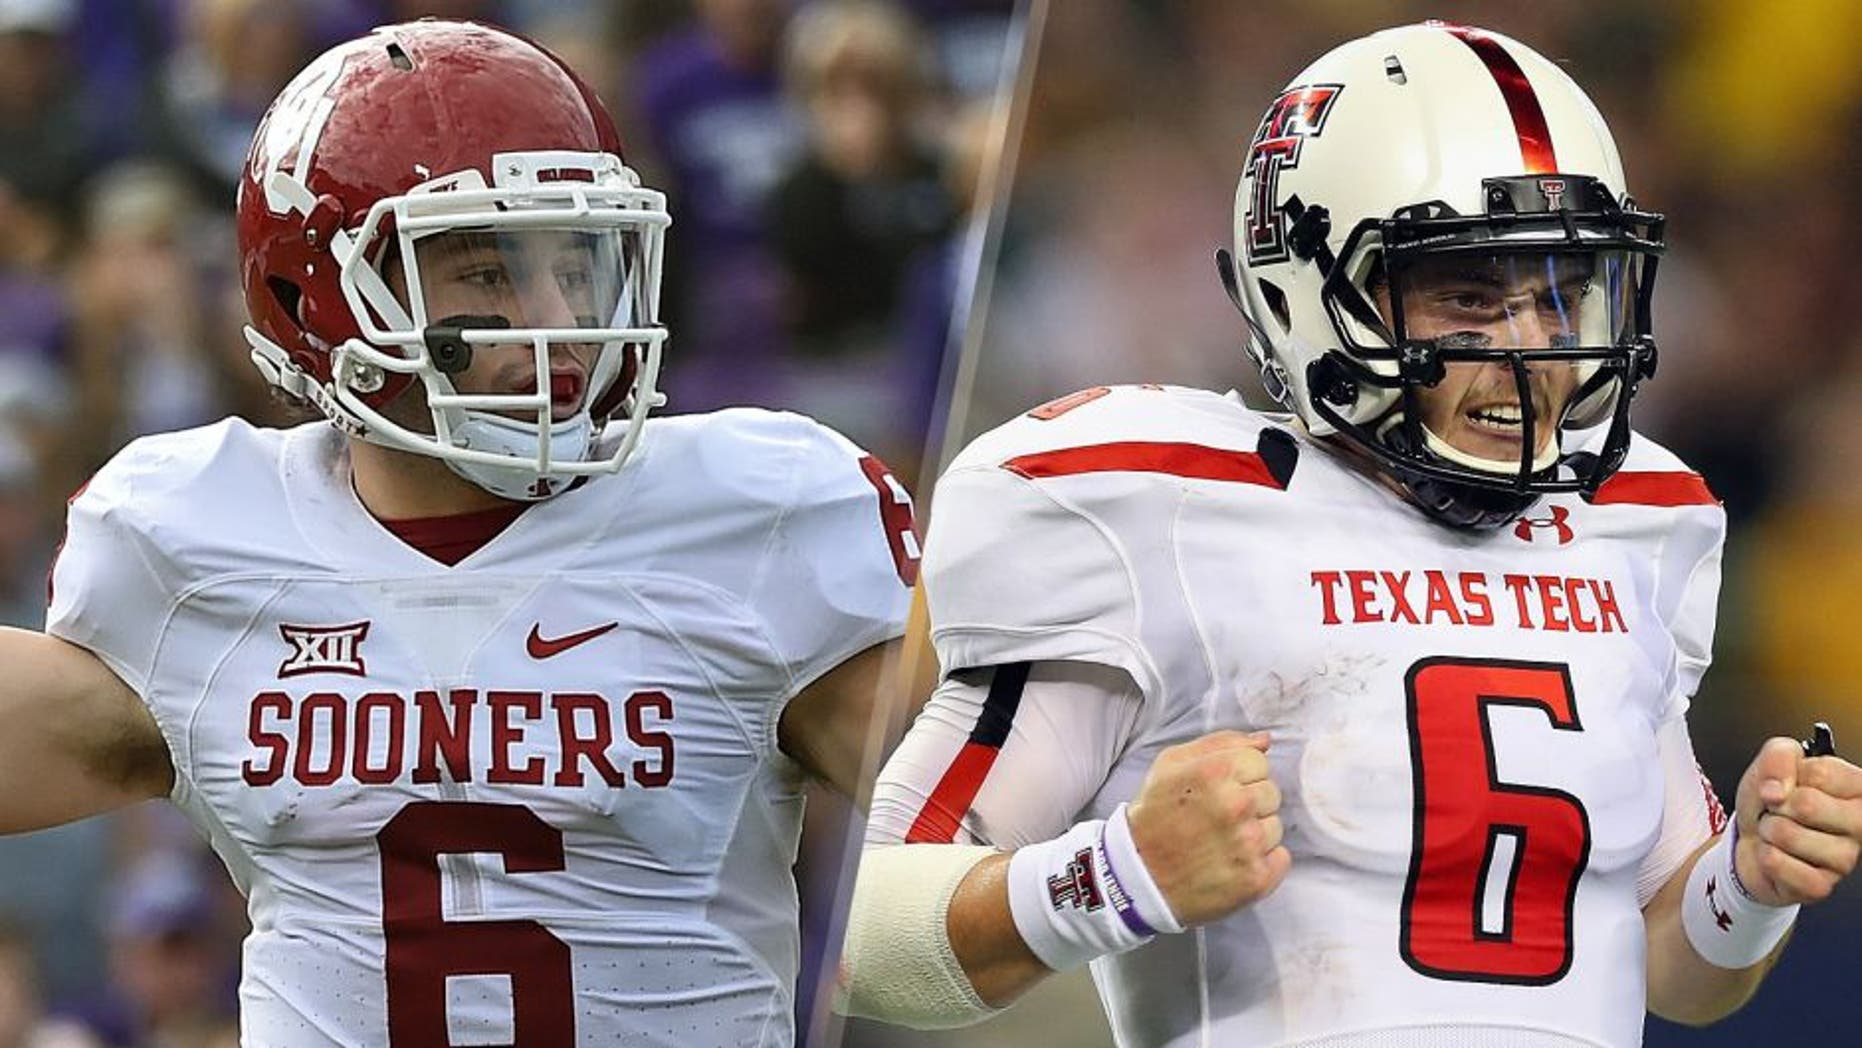 Quarterback Baker Mayfield #6 of the Oklahoma Sooners passes the ball against the Kansas State Wildcats during the first half on October 17, 2015 at Bill Snyder Family Stadium in Manhattan, Kansas. (Photo by Peter G. Aiken/Getty Images) Baker Mayfield #6 of the Texas Tech Red Raiders celebrates his second touchdown pass against the Baylor Bears at AT&T Stadium on November 16, 2013 in Arlington, Texas. (Photo by Ronald Martinez/Getty Images)